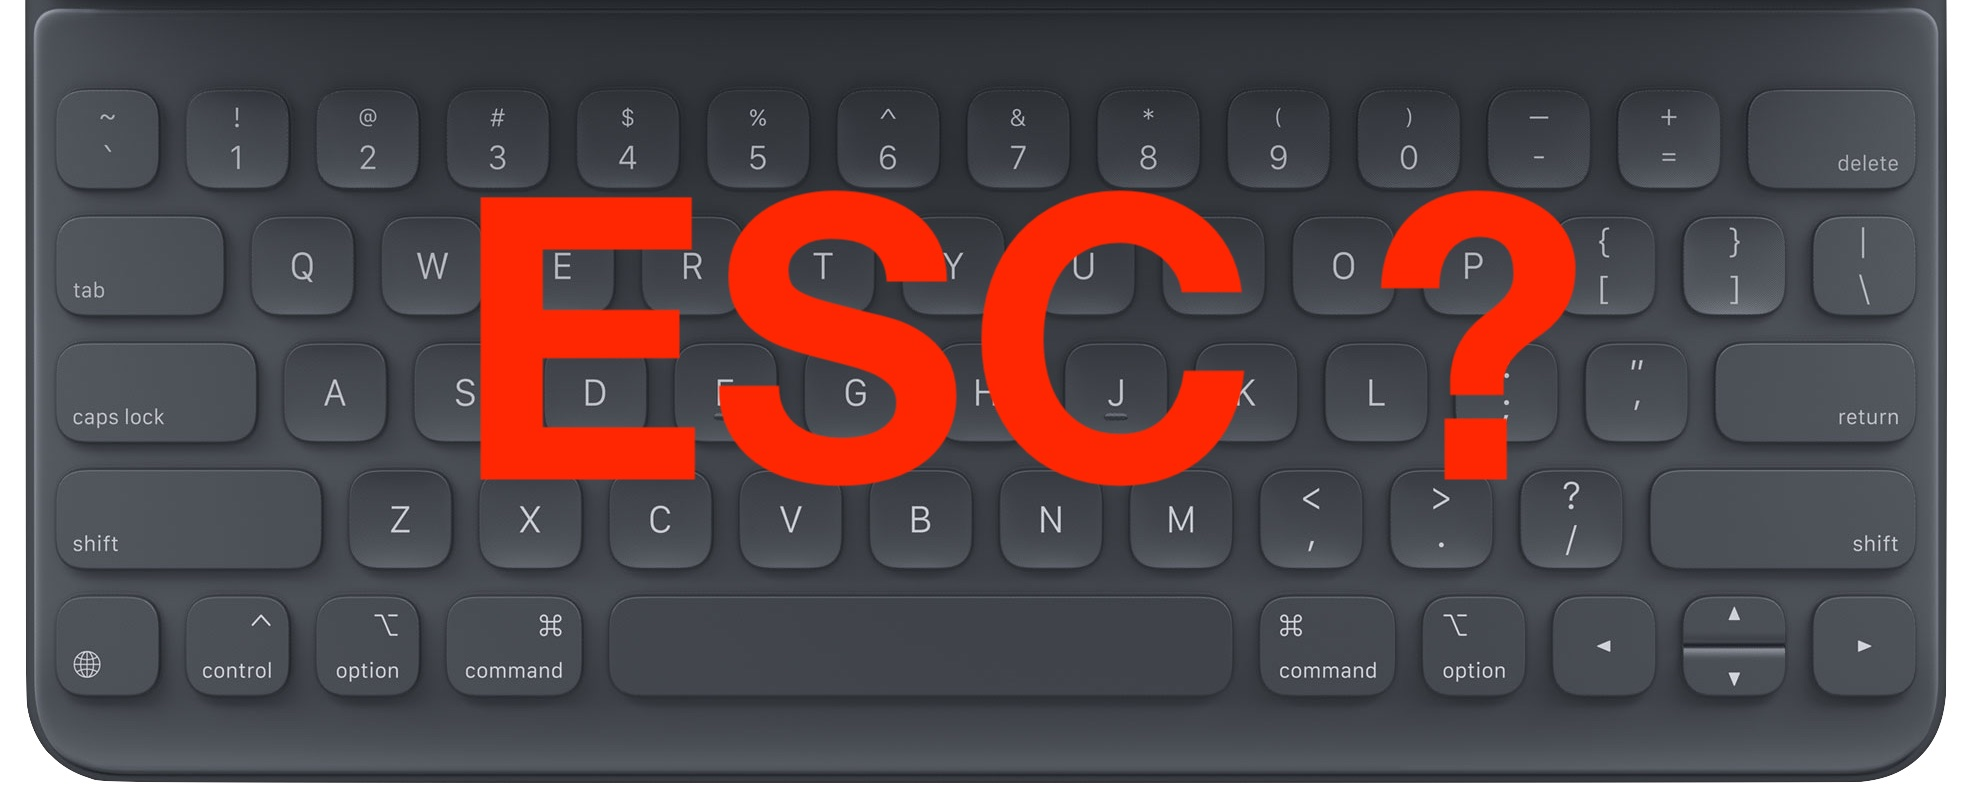 How To Type The Escape Key On Ipad Keyboard Osxdaily